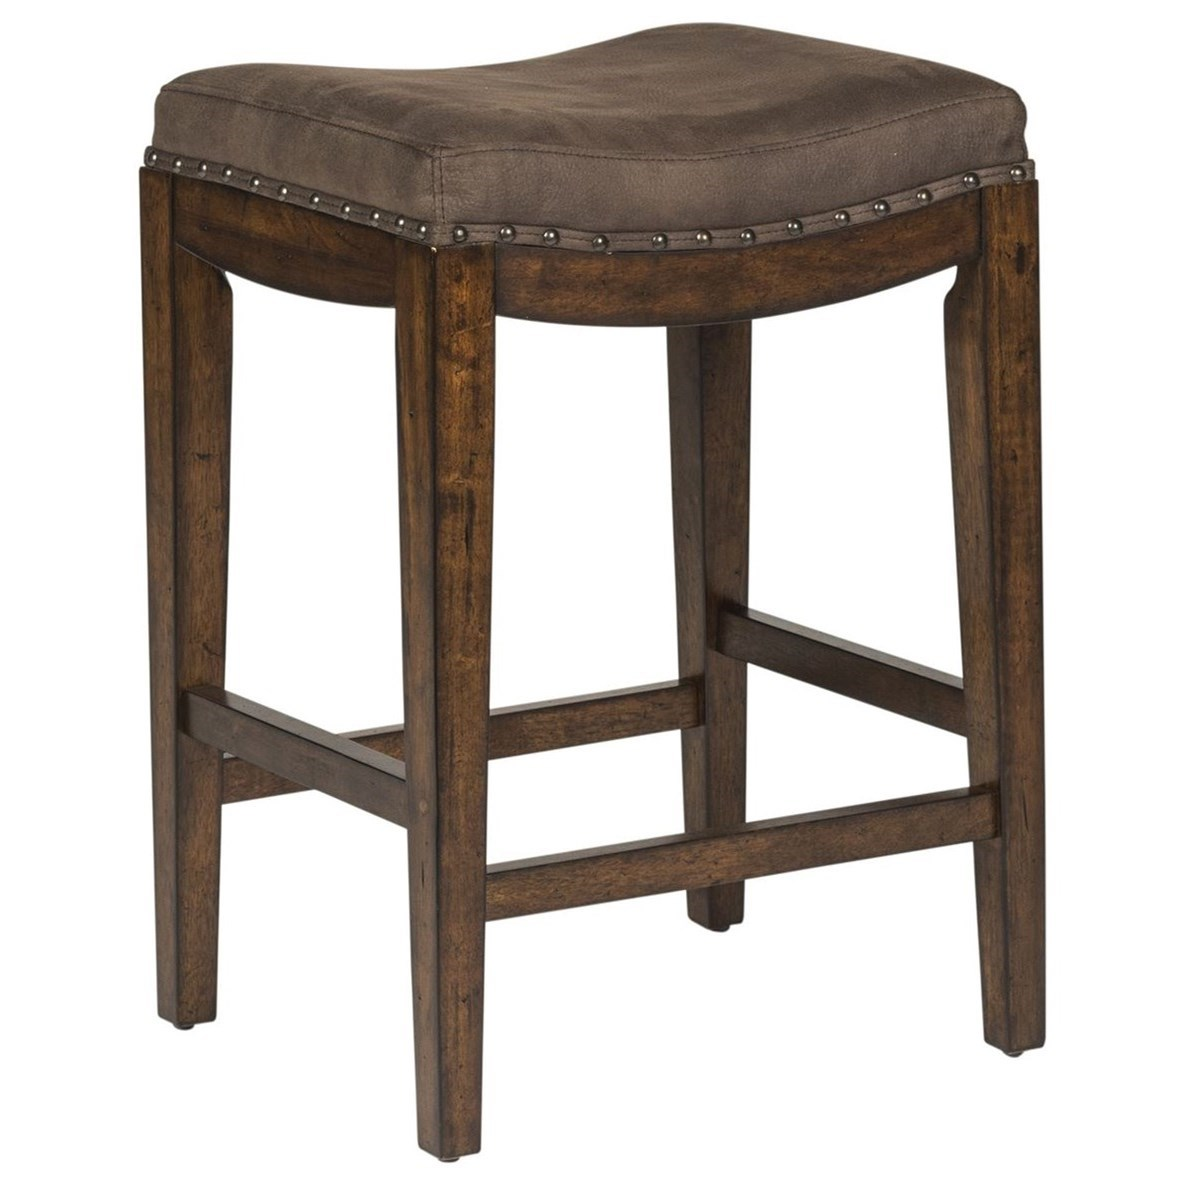 Aspen Skies Upholstered Barstool by Liberty Furniture at Novello Home Furnishings